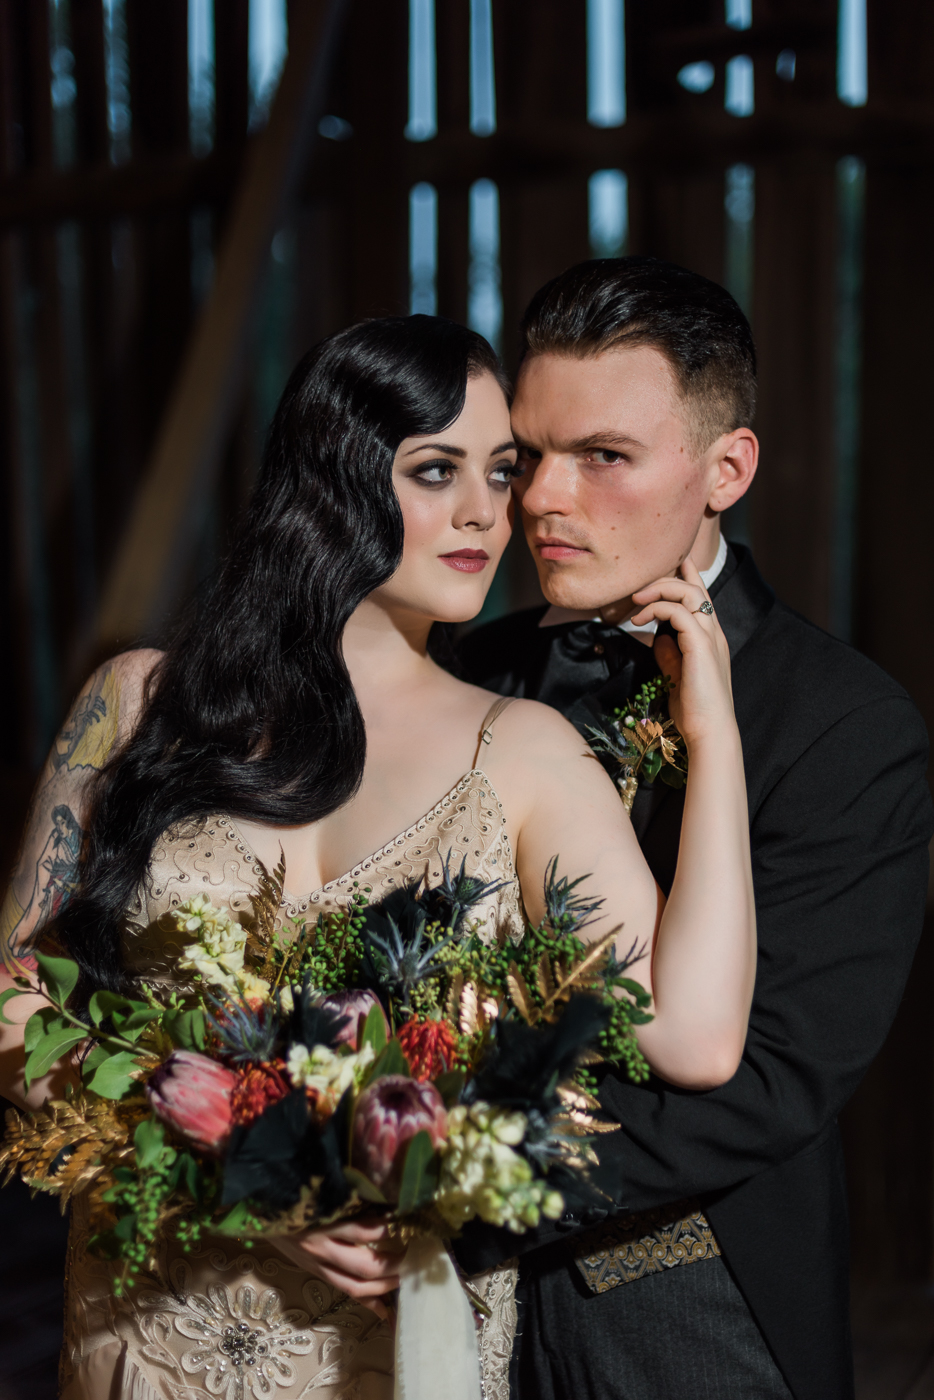 and-how-imaging-gothic-inspired-styled-shoot-gothic-wedding-1920s-theme-wedding-1920s-inspired-styled-shoot-halloween-styled-shoot-gothic-inspired-wedding-64